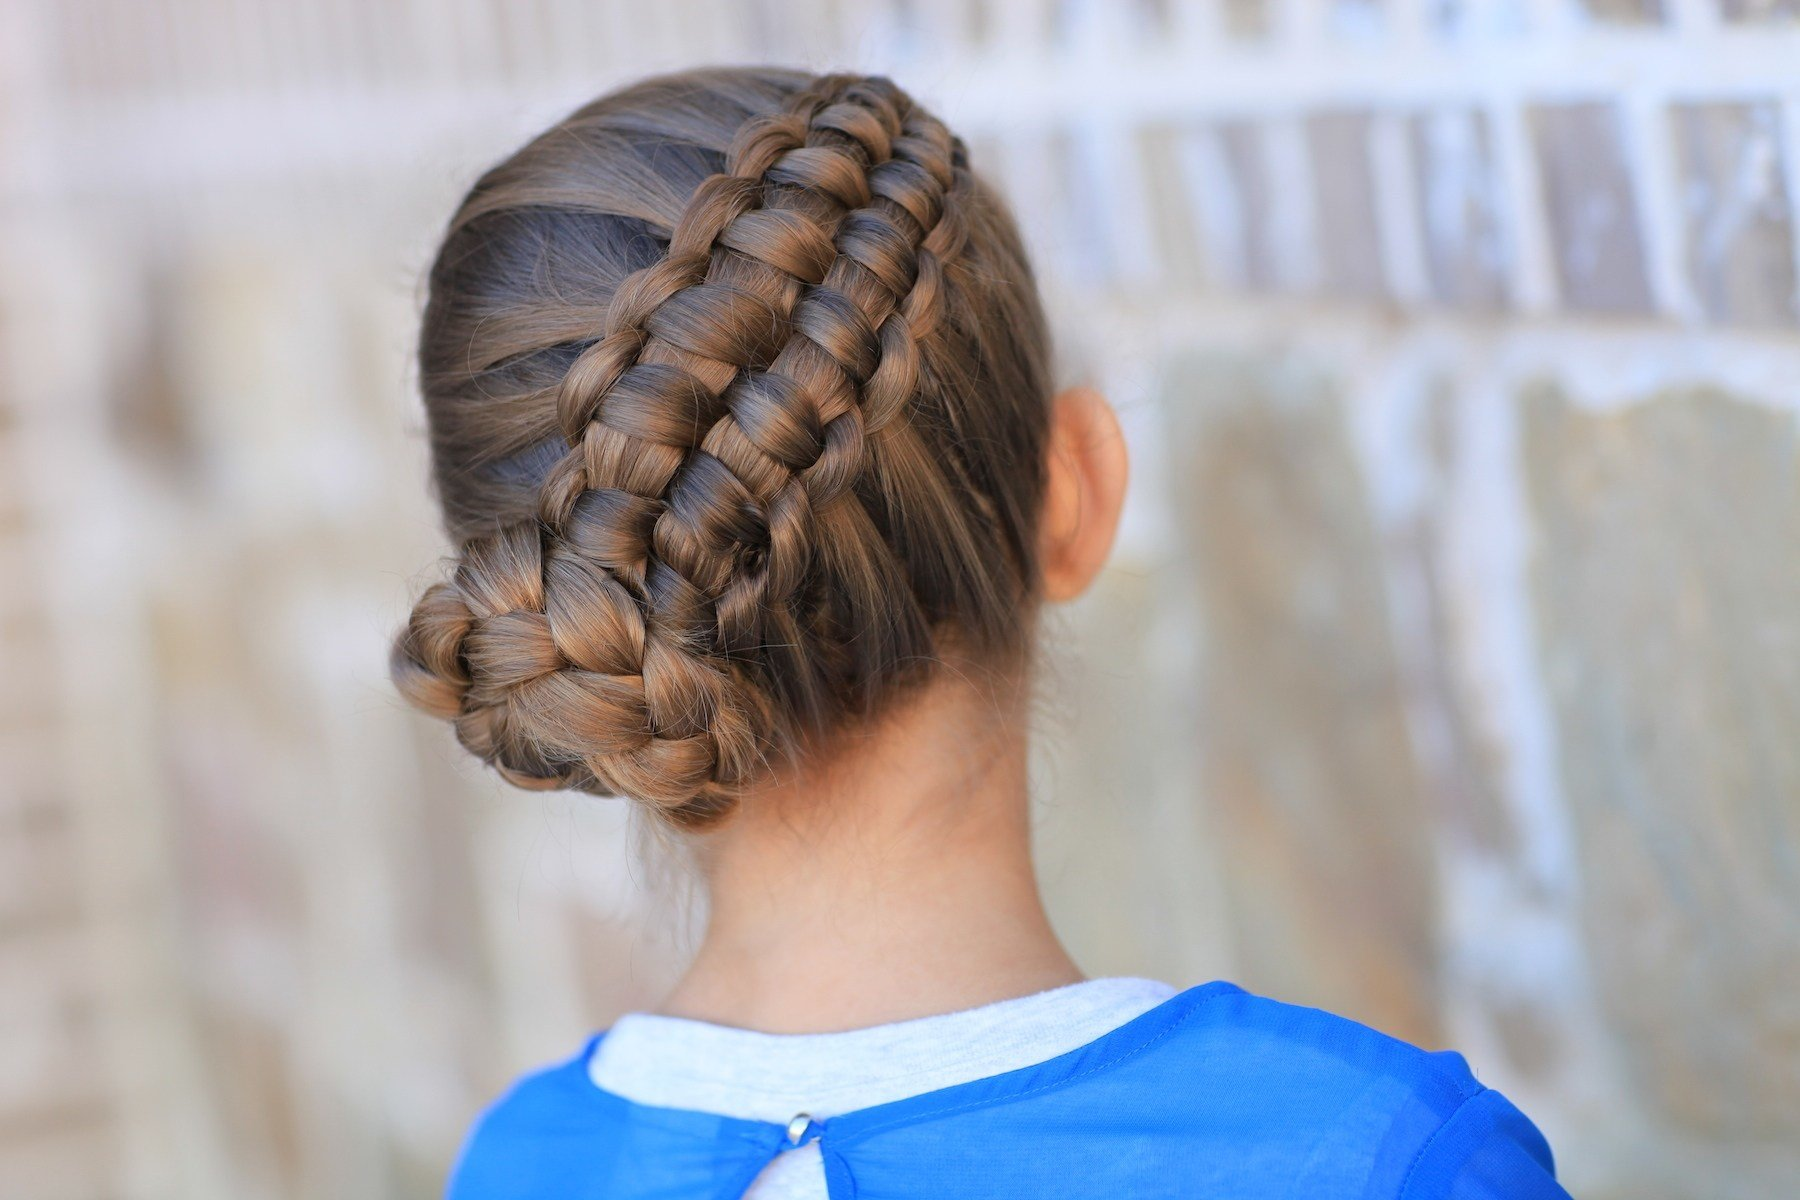 The Best How To Create A Zipper Braid Updo Hairstyles Cute Pictures